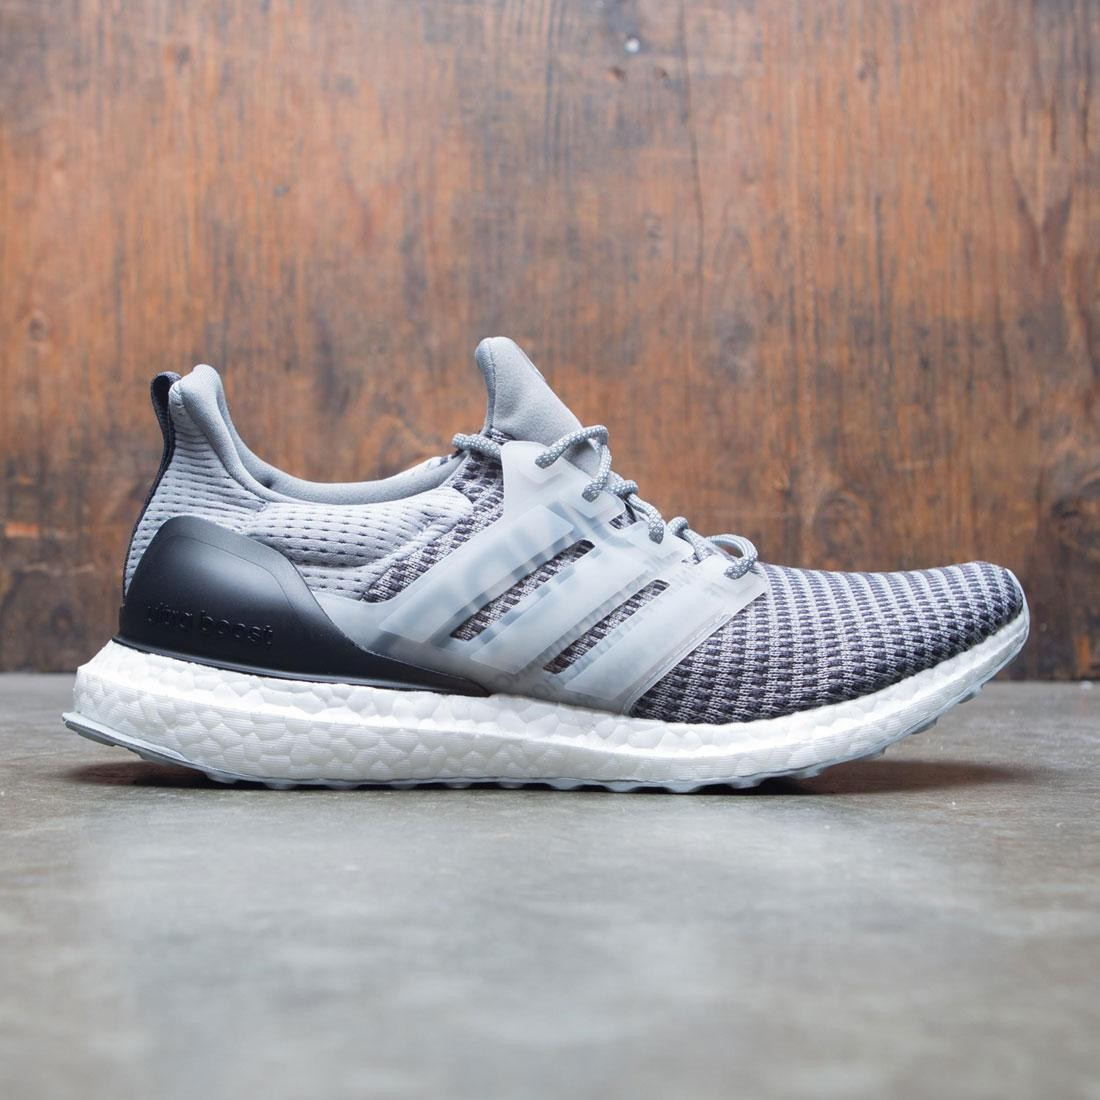 6b8103e9ac94e Adidas x Undefeated Men UltraBOOST gray shift grey cinder utility black